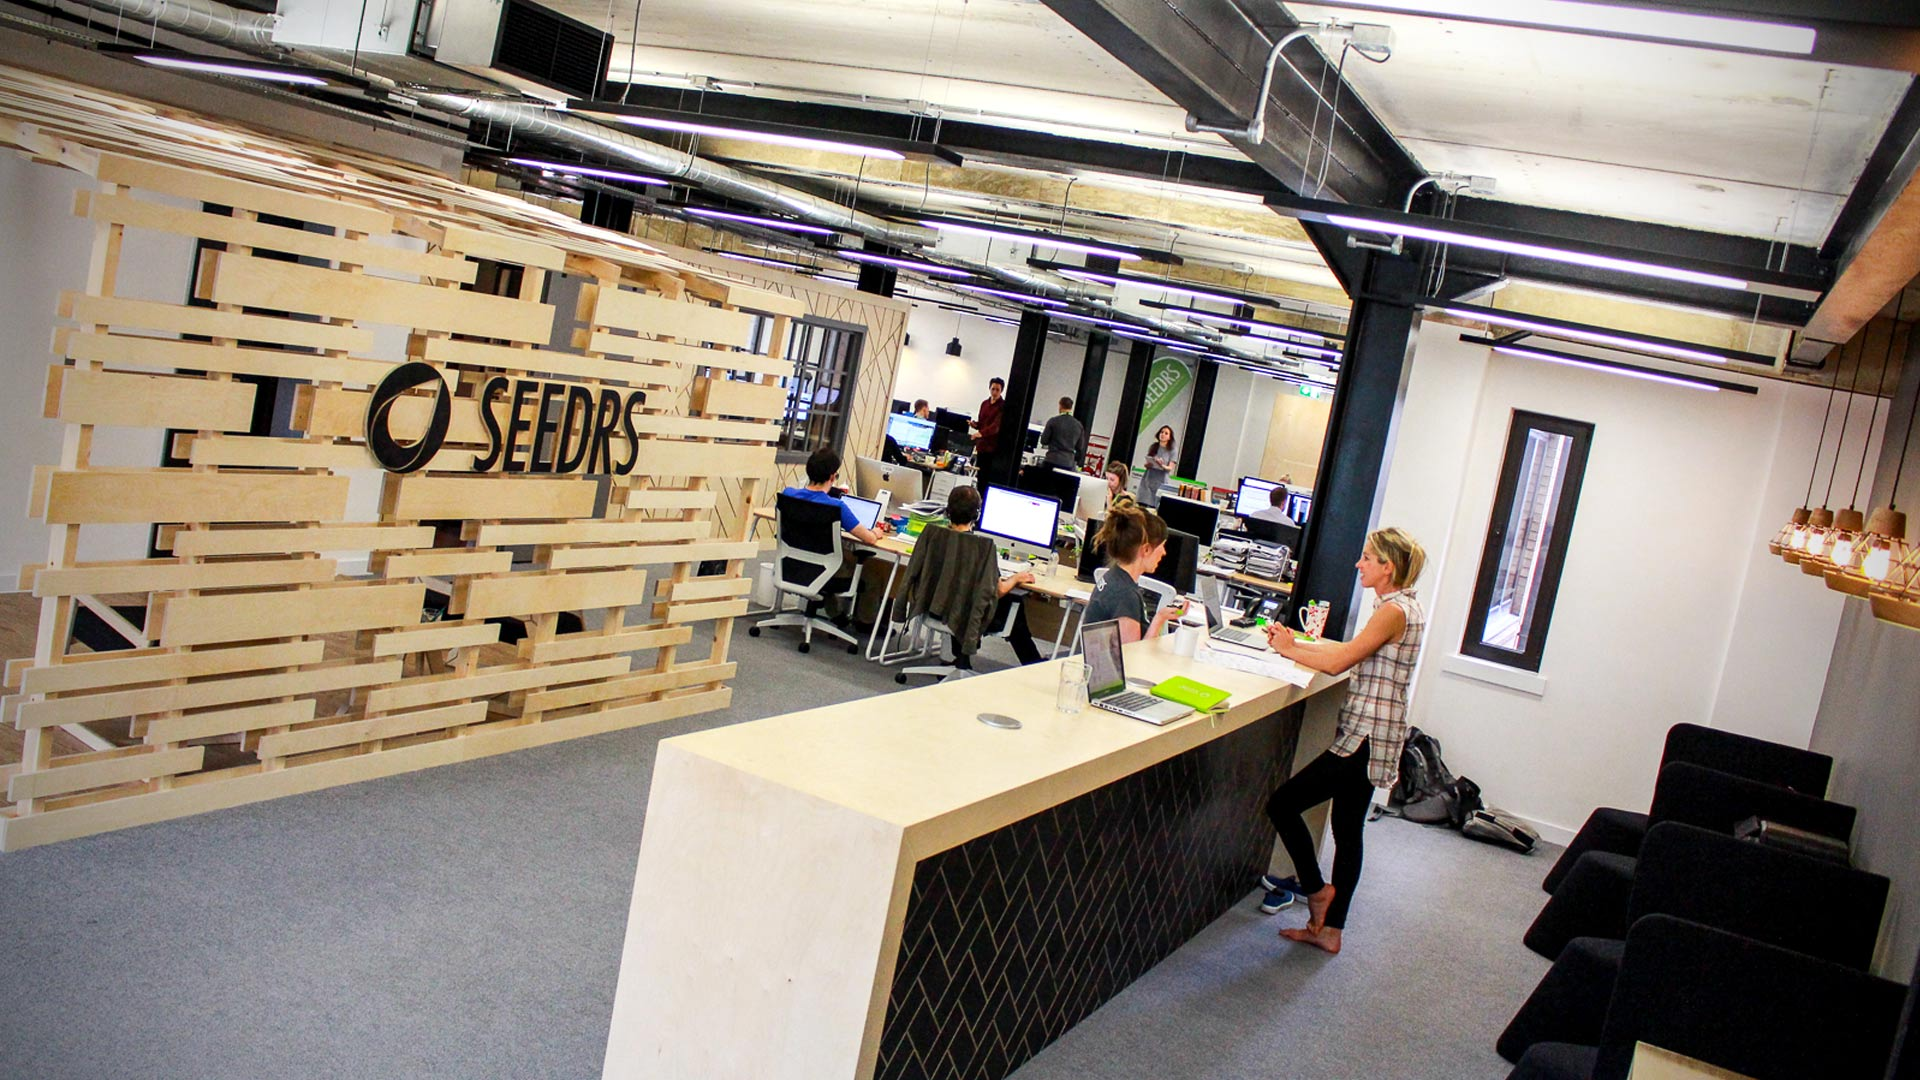 Seedrs office design commercial interiors workspace for 10 x 12 office layout